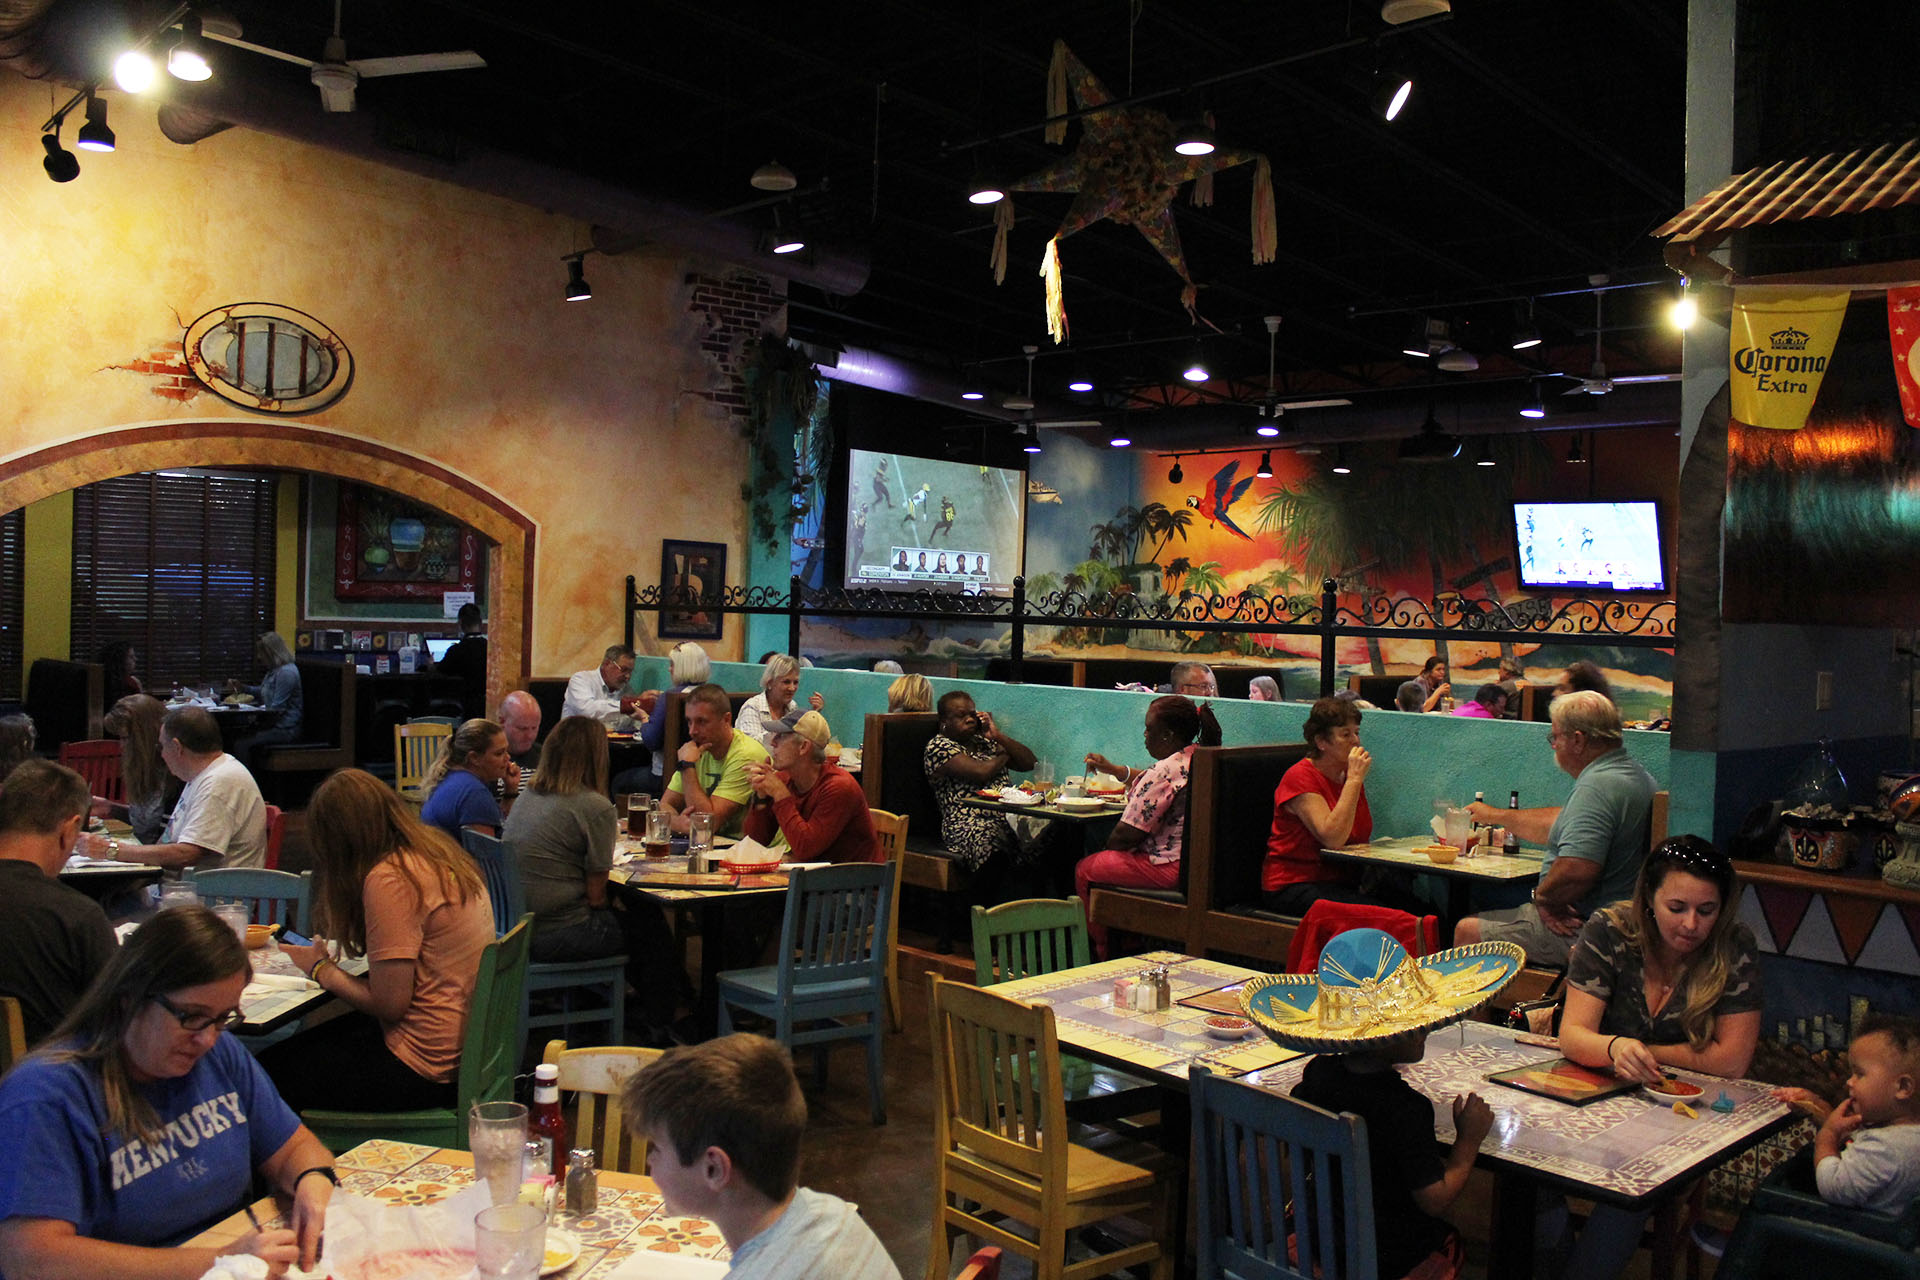 Restaurants near me,  Mexican Food Restaurants in Frankfort Kentucky, Mexican Food Near Me